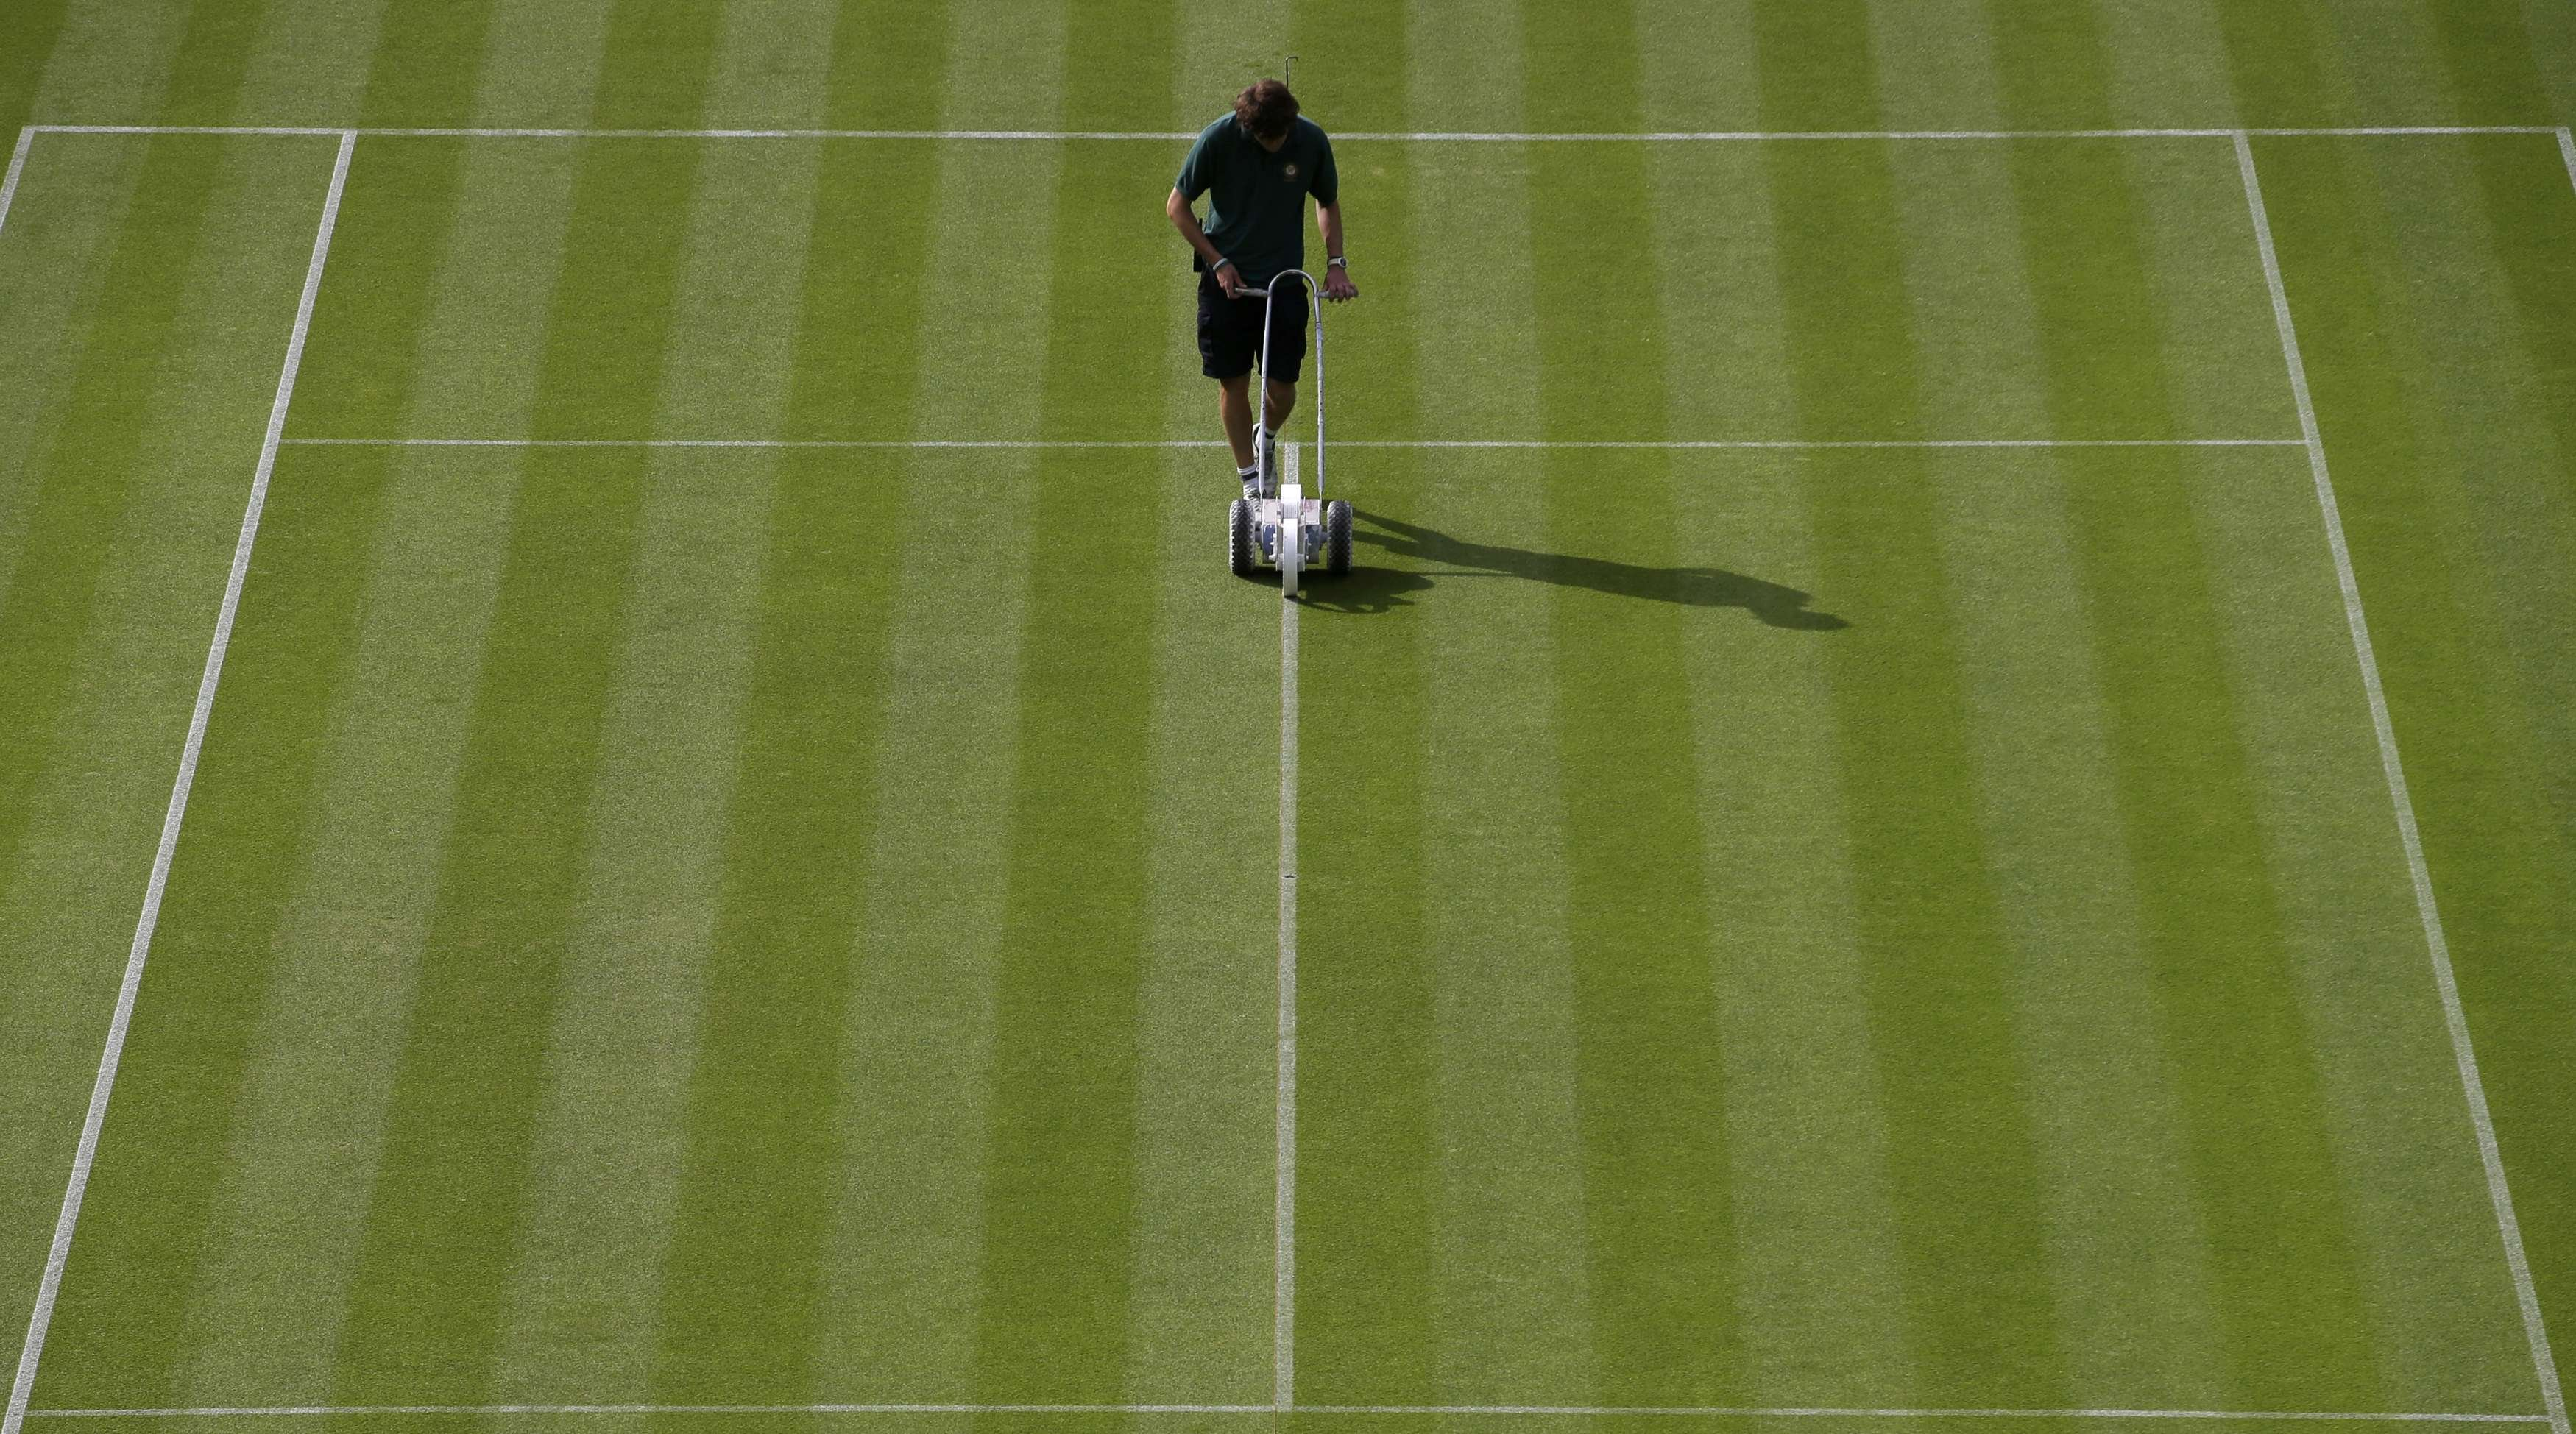 A worker paints lines on a court prior to the first day's play of the Wimbledon Tennis Championships, in London on June 23, 2014.